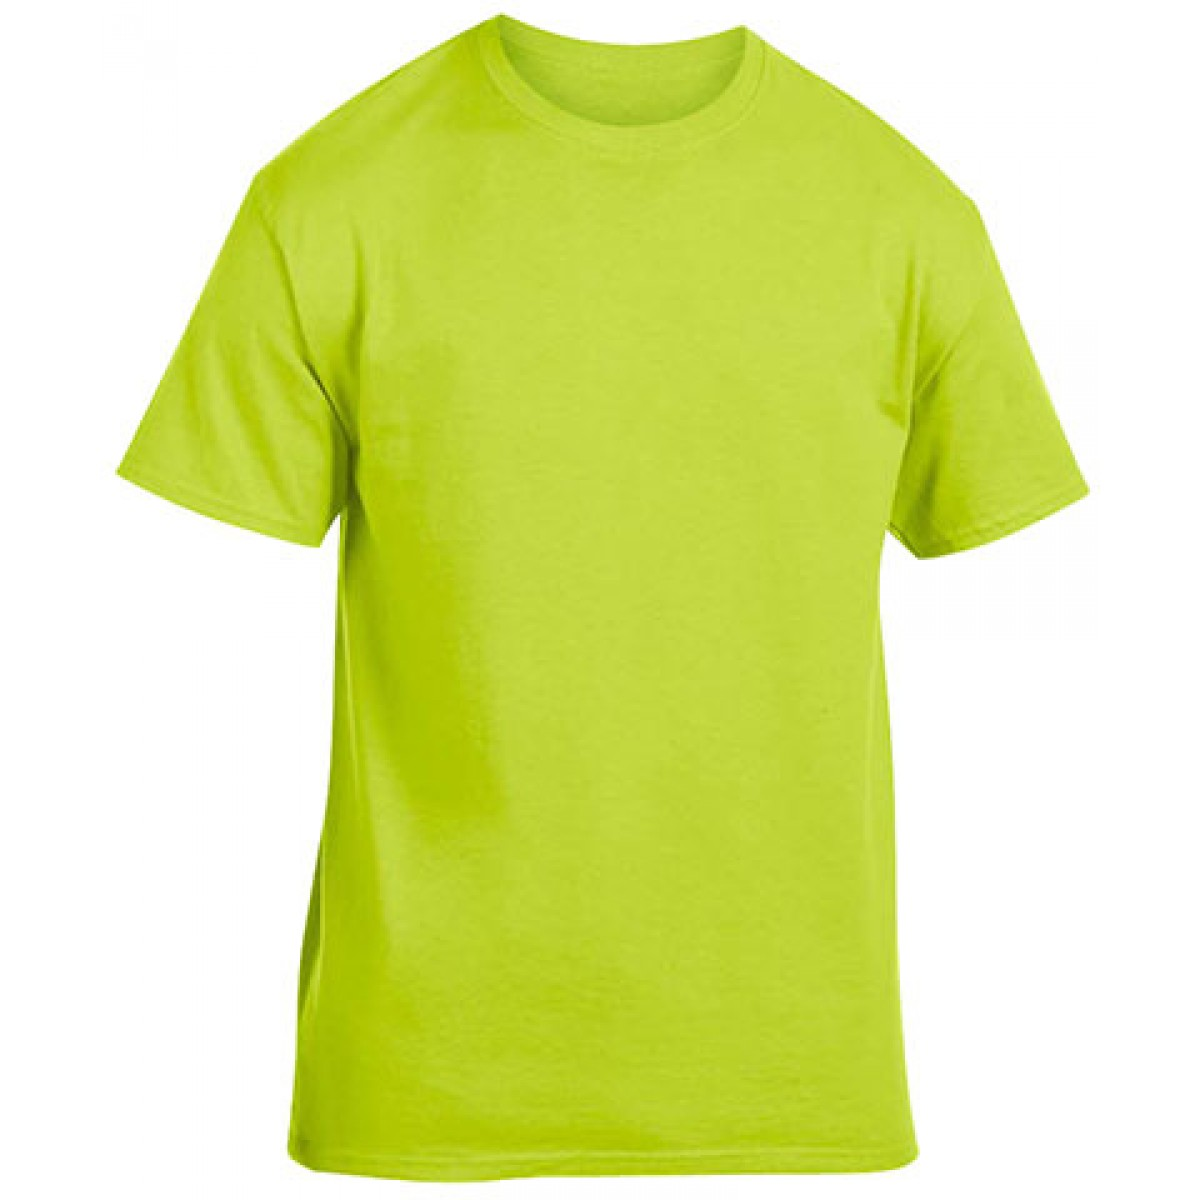 Cotton Short Sleeve T-Shirt-Safety Green-XL